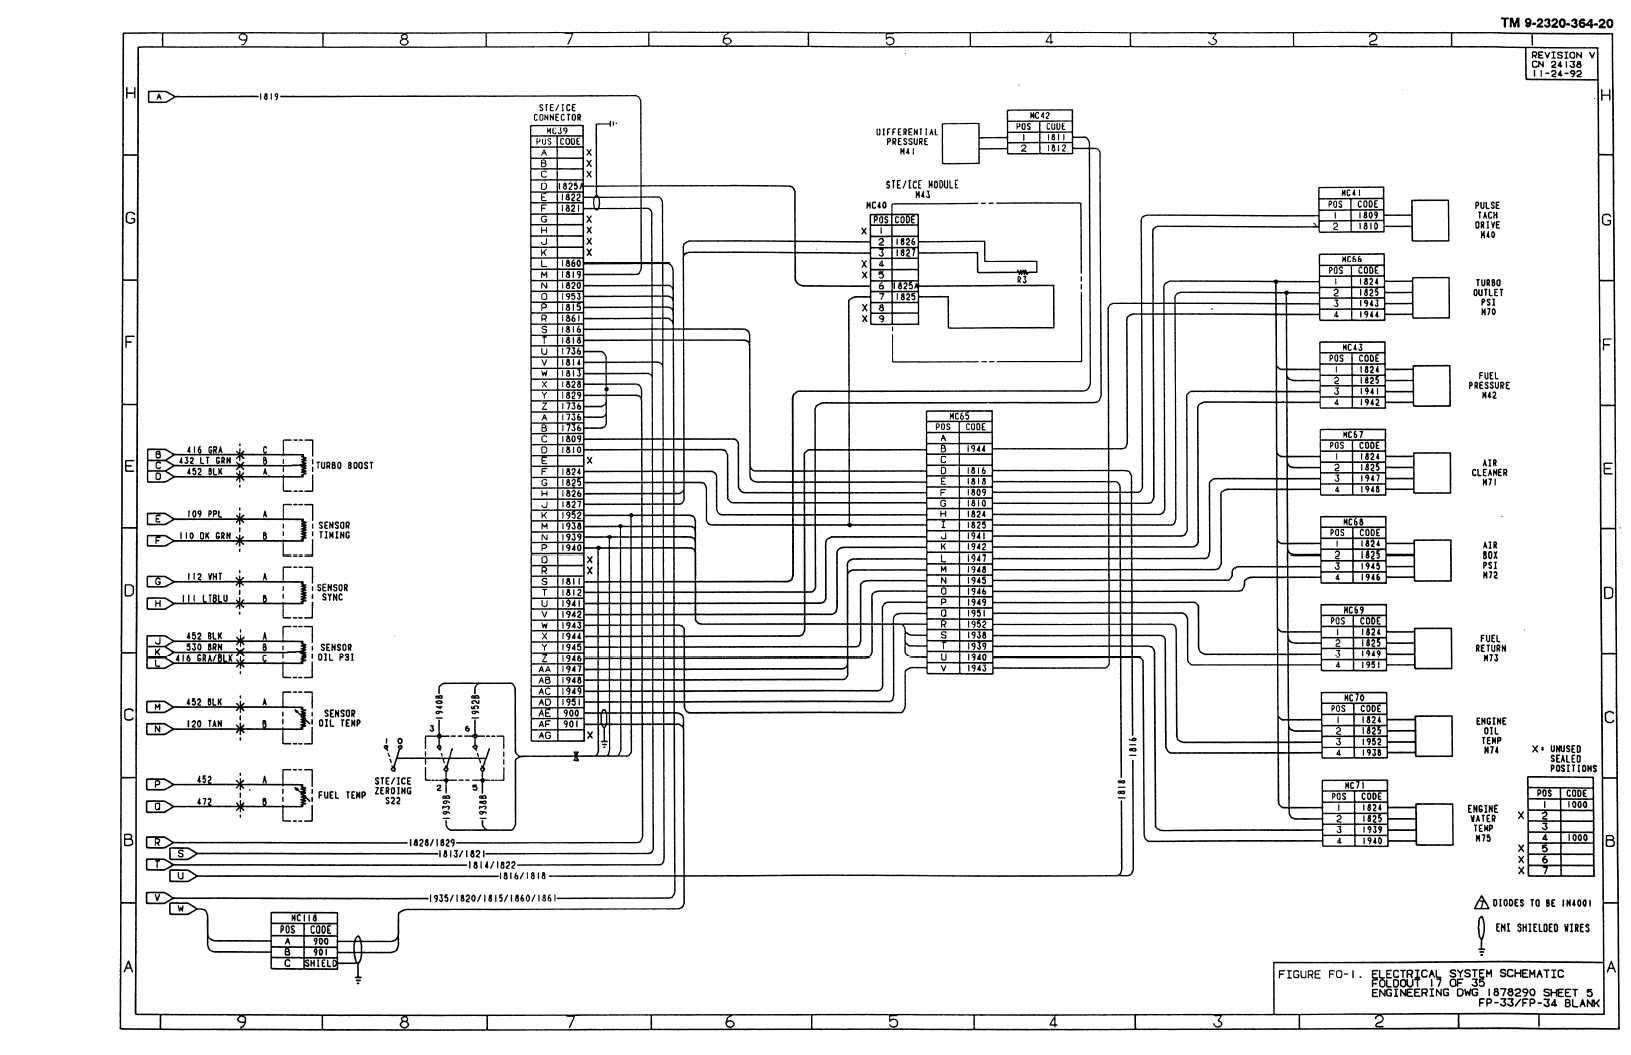 FIGURE FO-1. ELECTRICAL SYSTEM SCHEMATIC (17 OF 35)